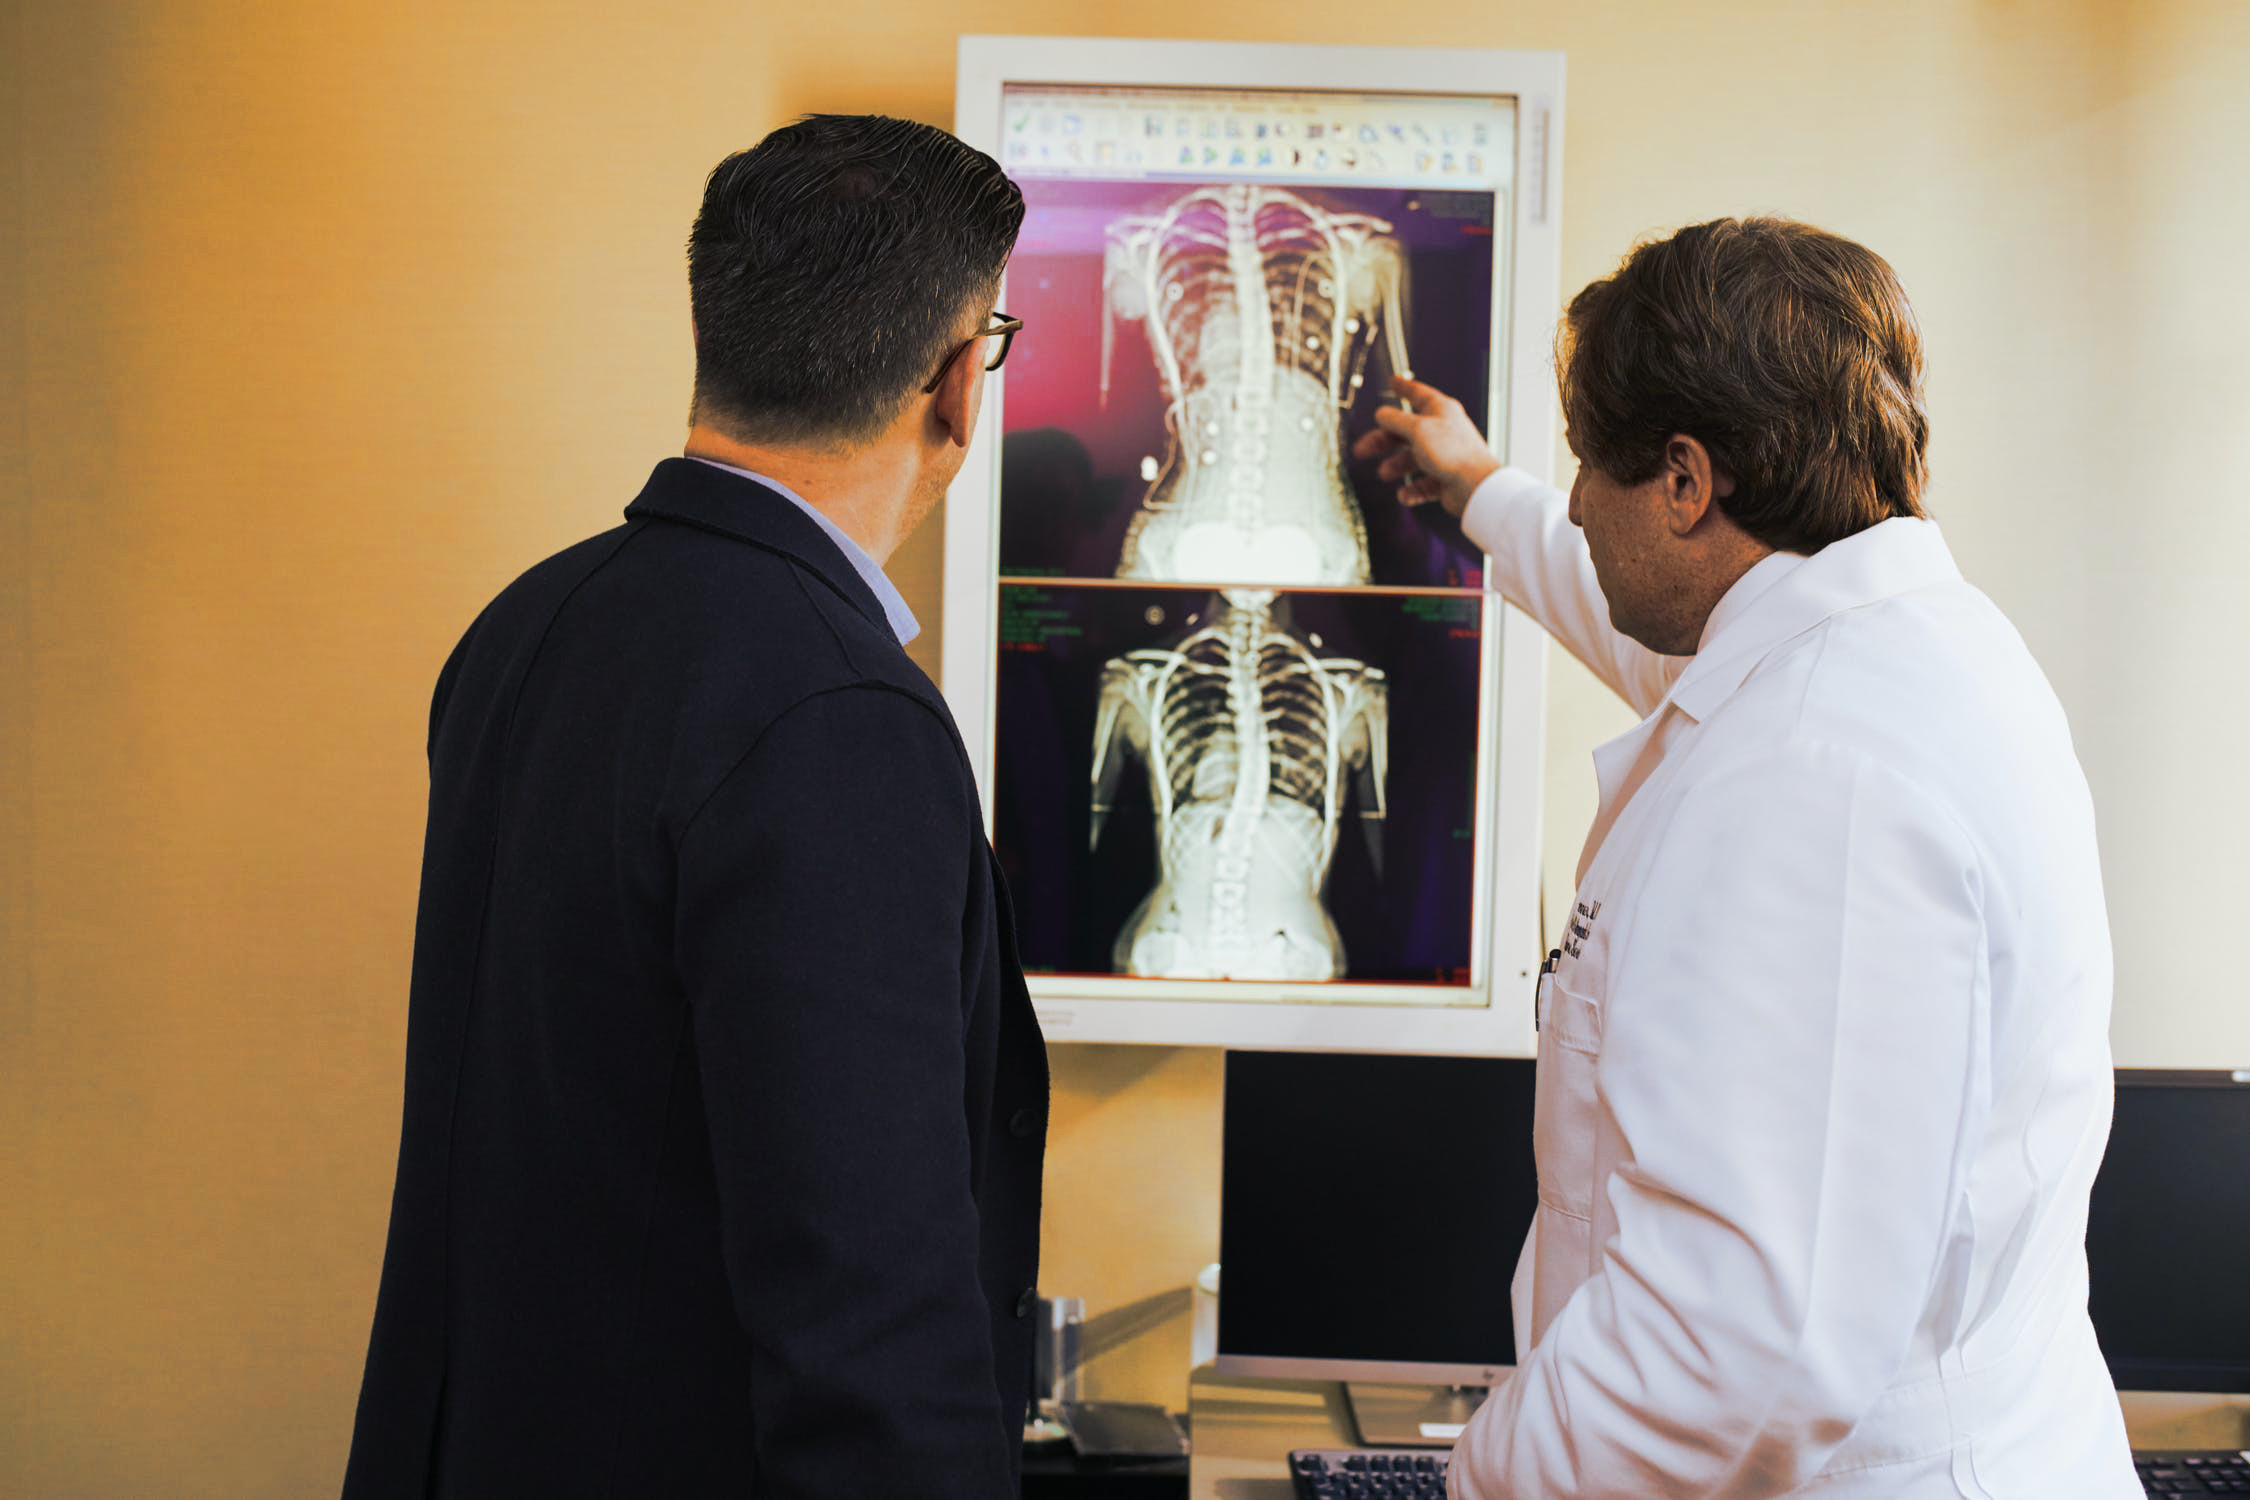 Methods of Radiology micro-training for beginners